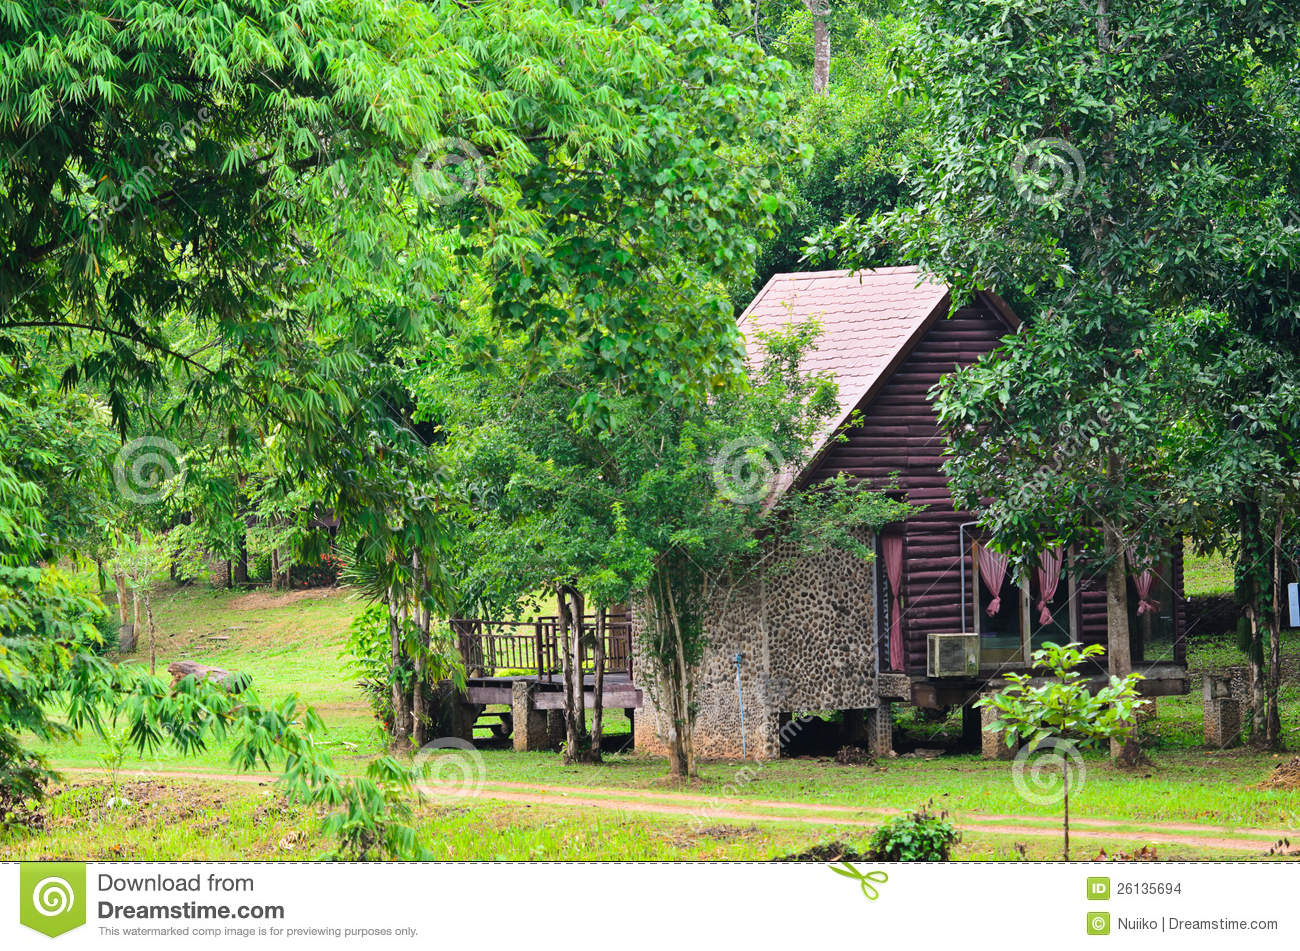 small-wooden-cottage-forest-26135694 This Old House Plans En on traditional house plans, old house blueprints and plans, country house plans, old world courtyard home plans, this old house classics,